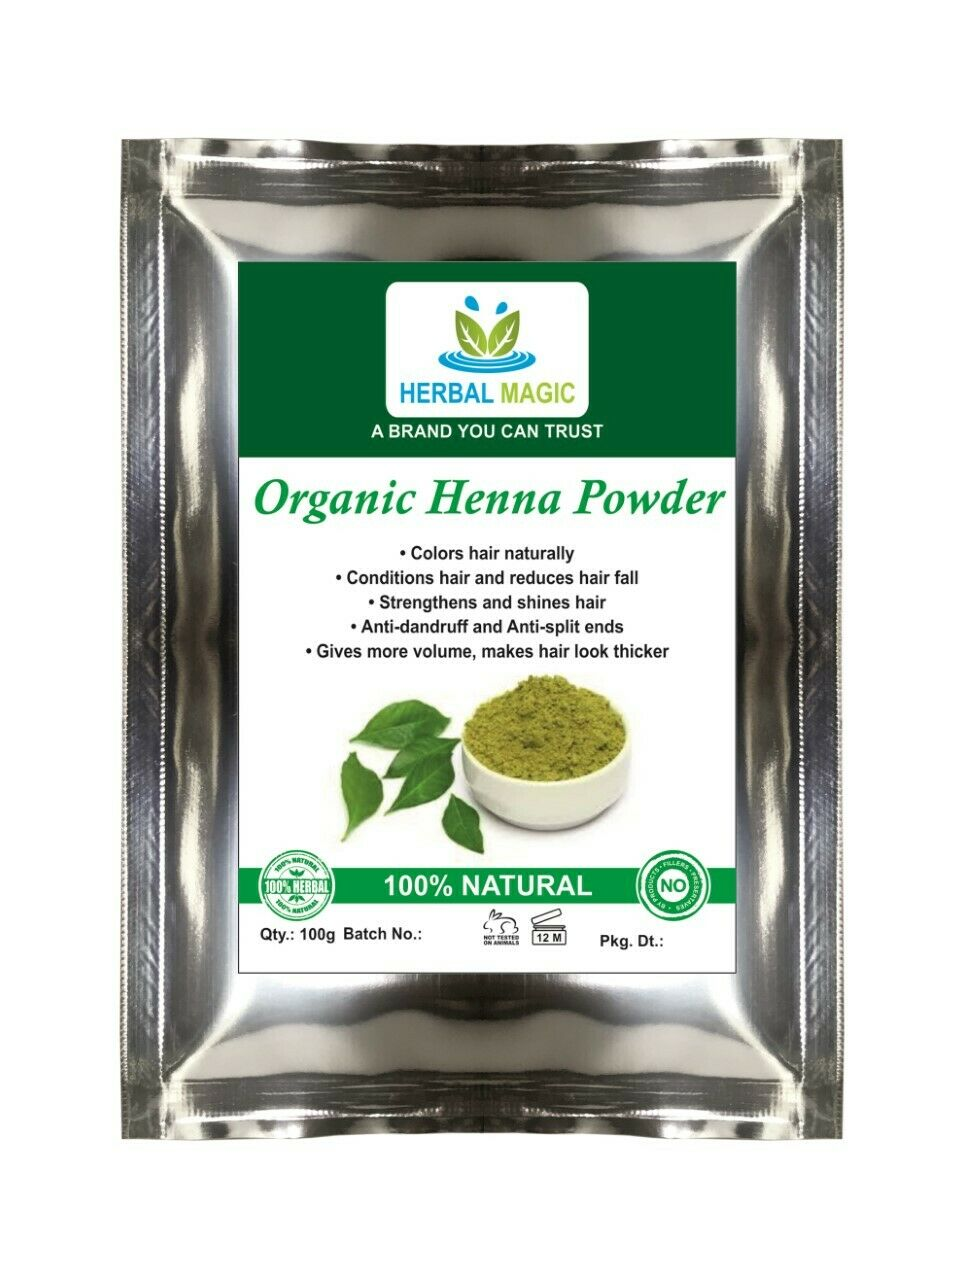 100g-1kg Organic Henna Powder, Simply mix with indigo For Brown/Black Hair Color